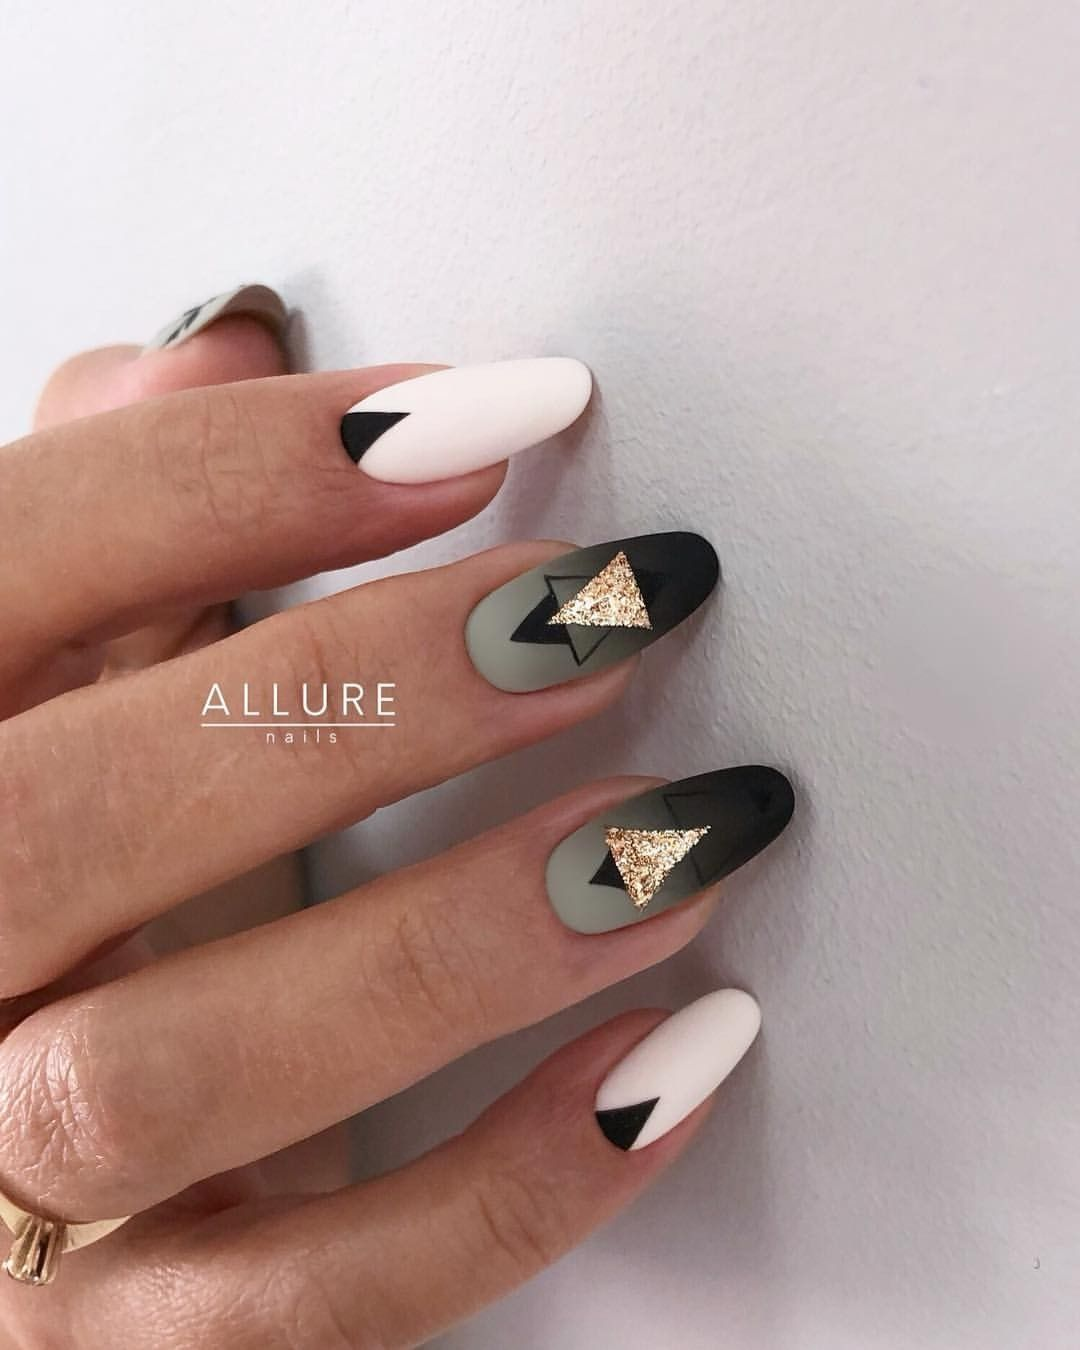 Pin by Anne mette on Hair and beauty  Pinterest  Nails